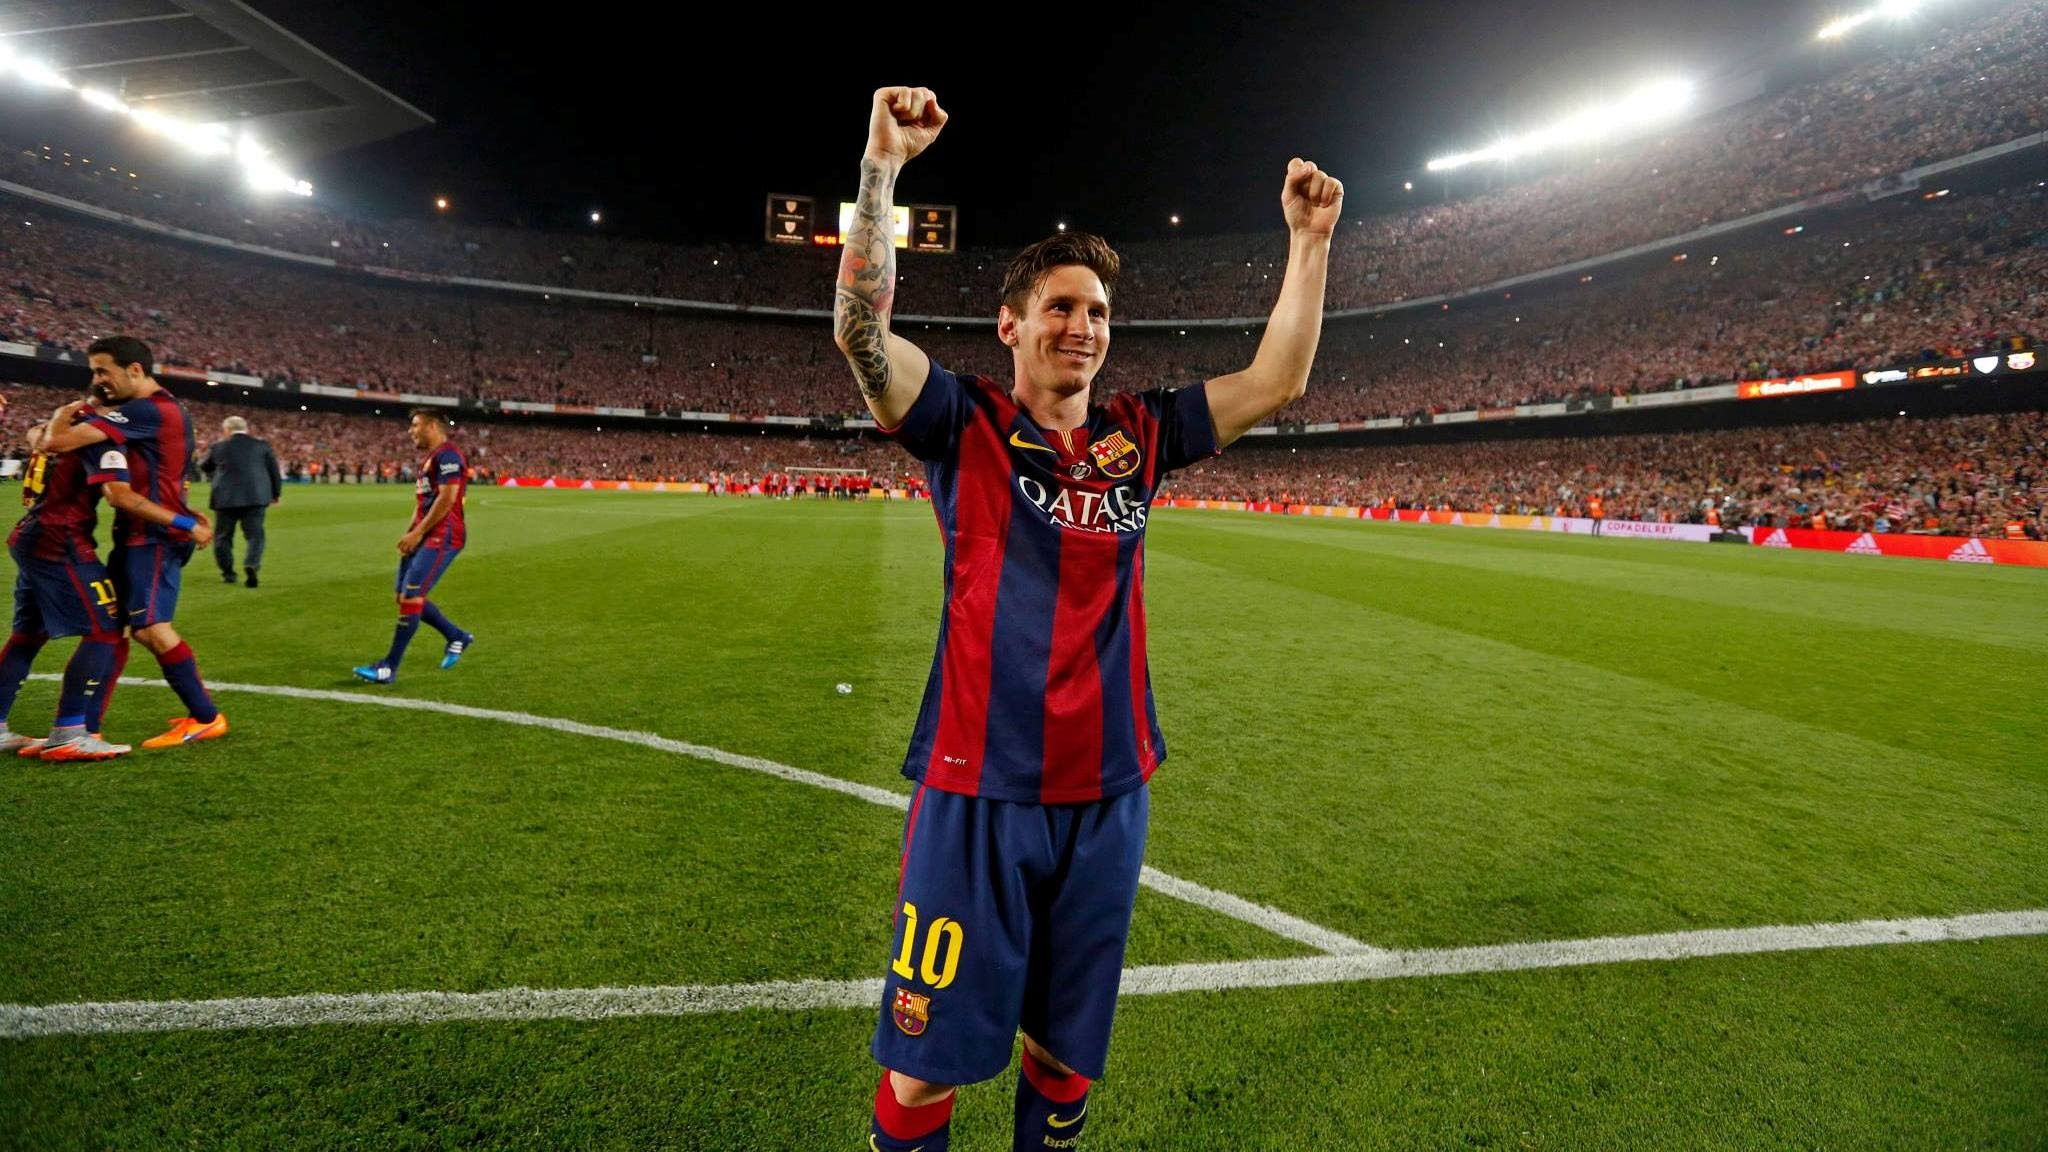 Free Lionel Messi Football Player Hd Goals Background Mobile Desktop Download Wallpaper Jpg